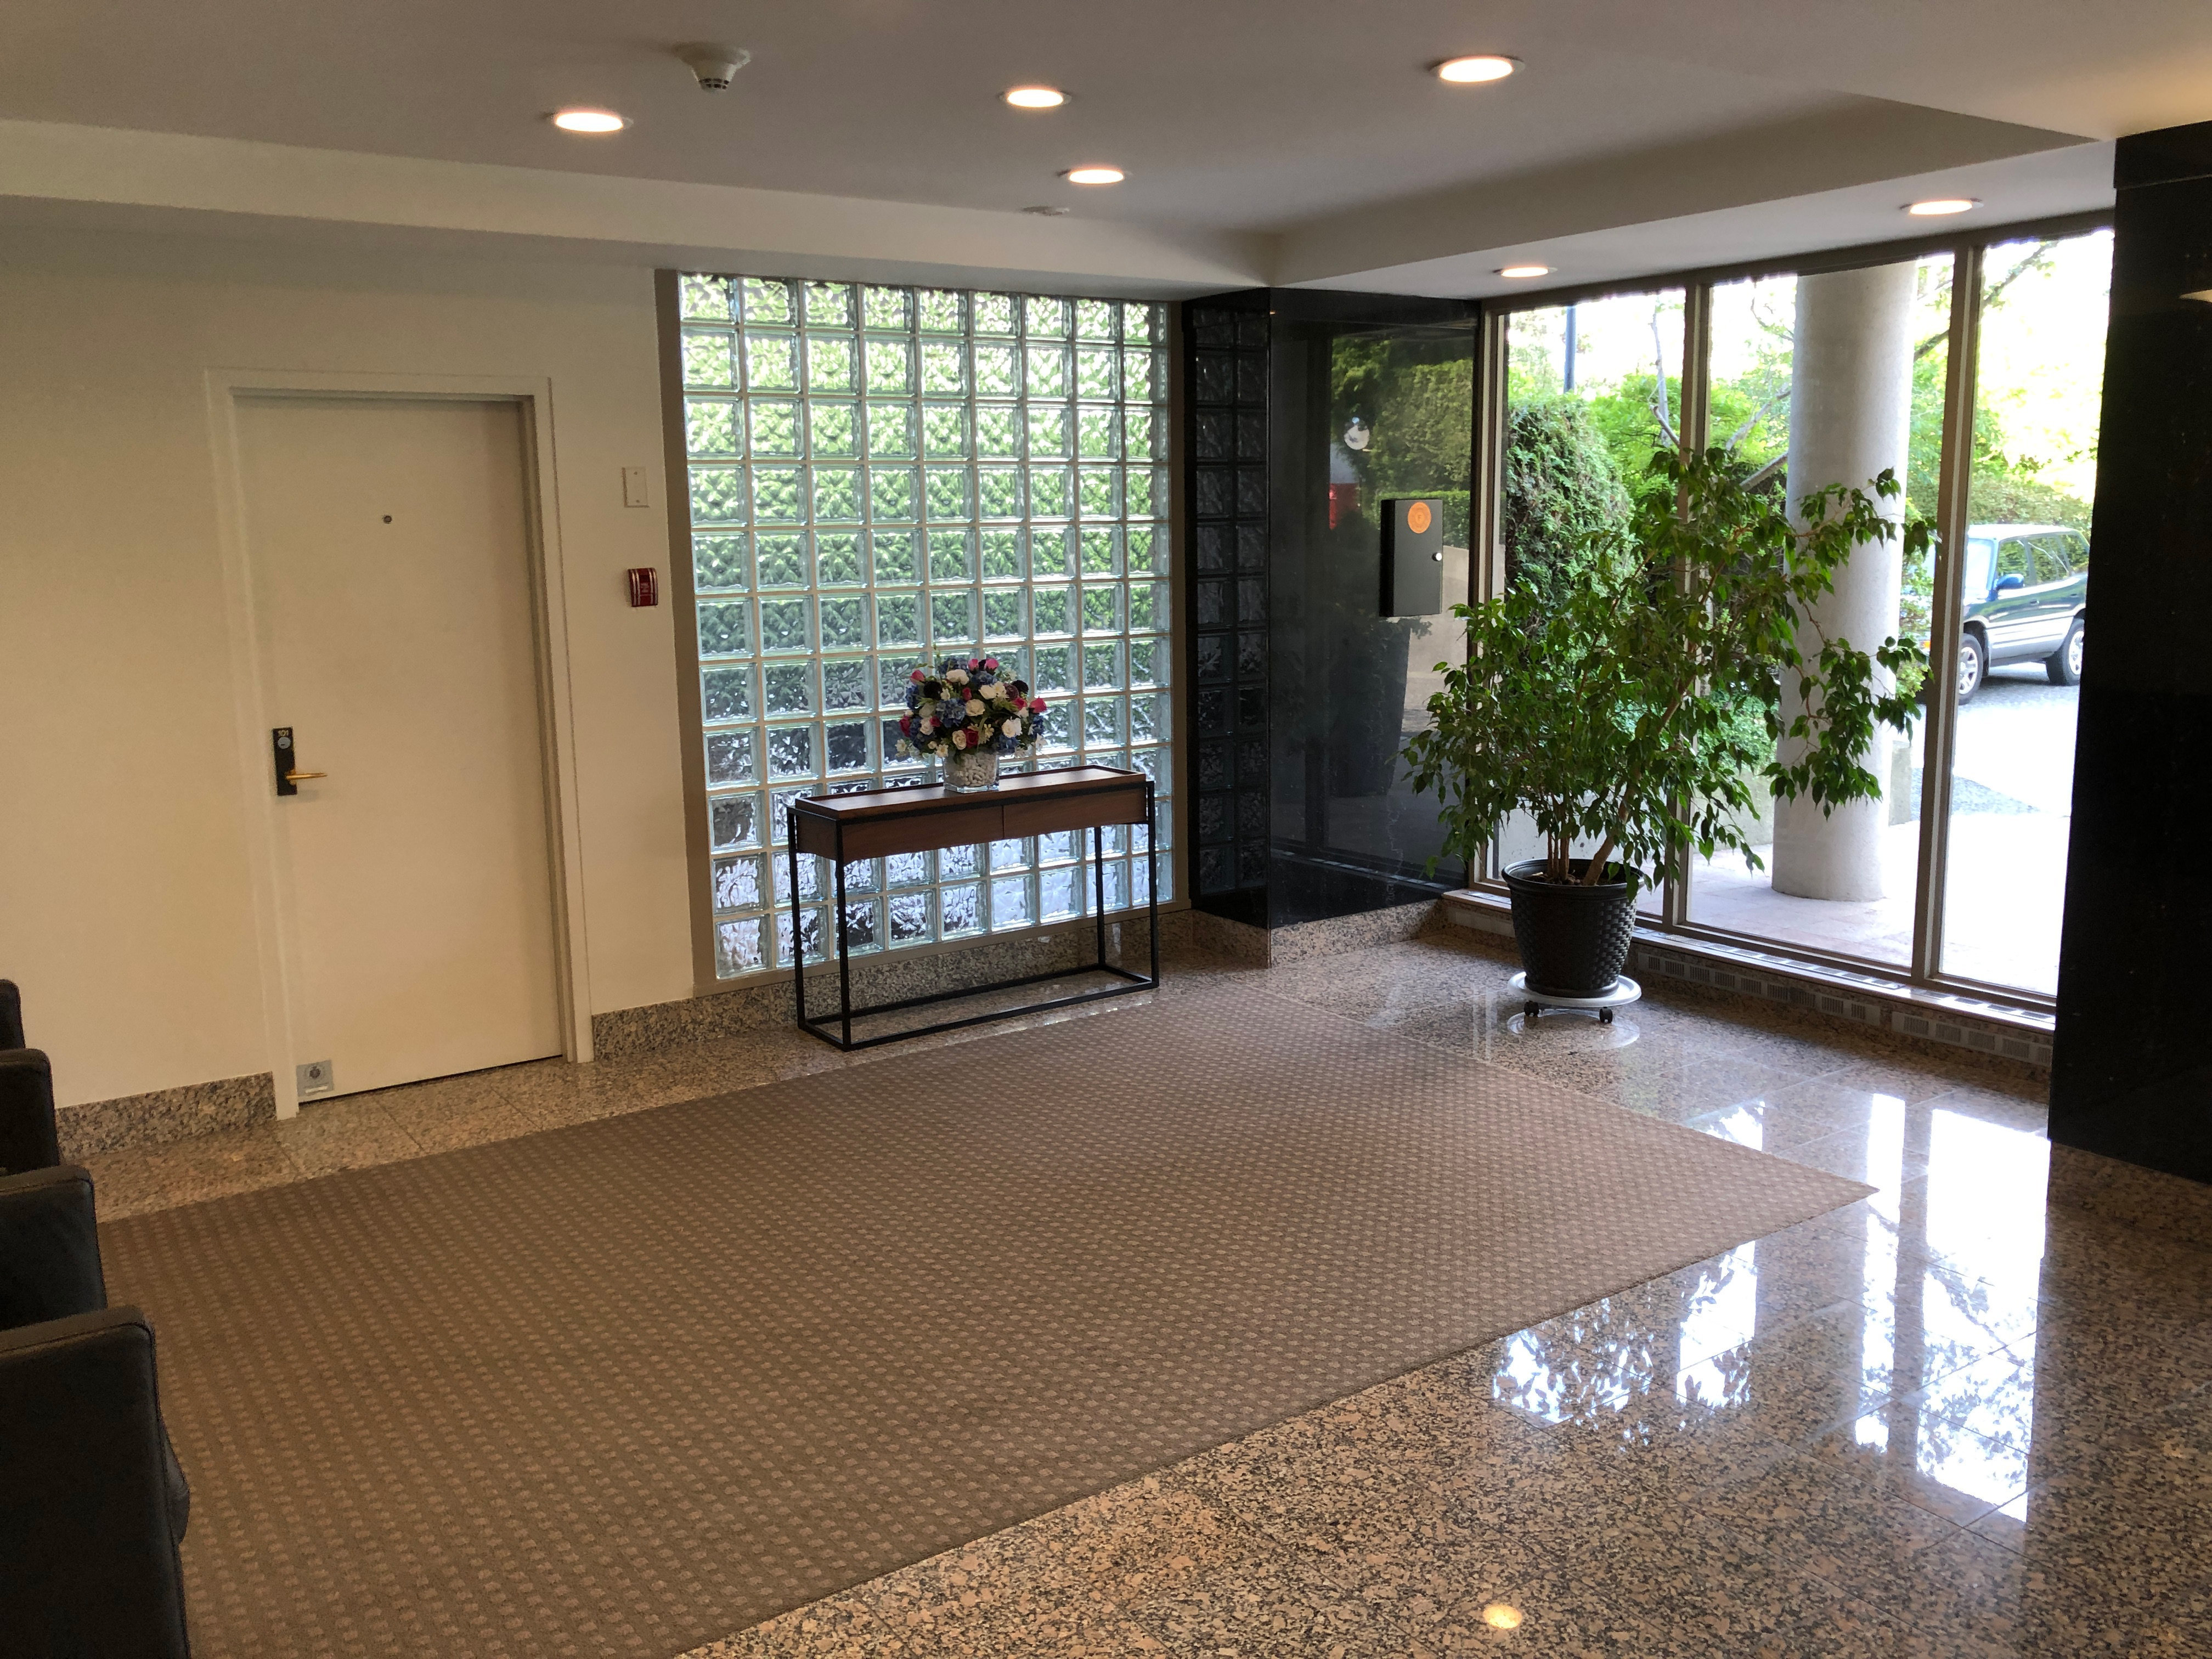 The Claridge 5850 Balsam Lobby!